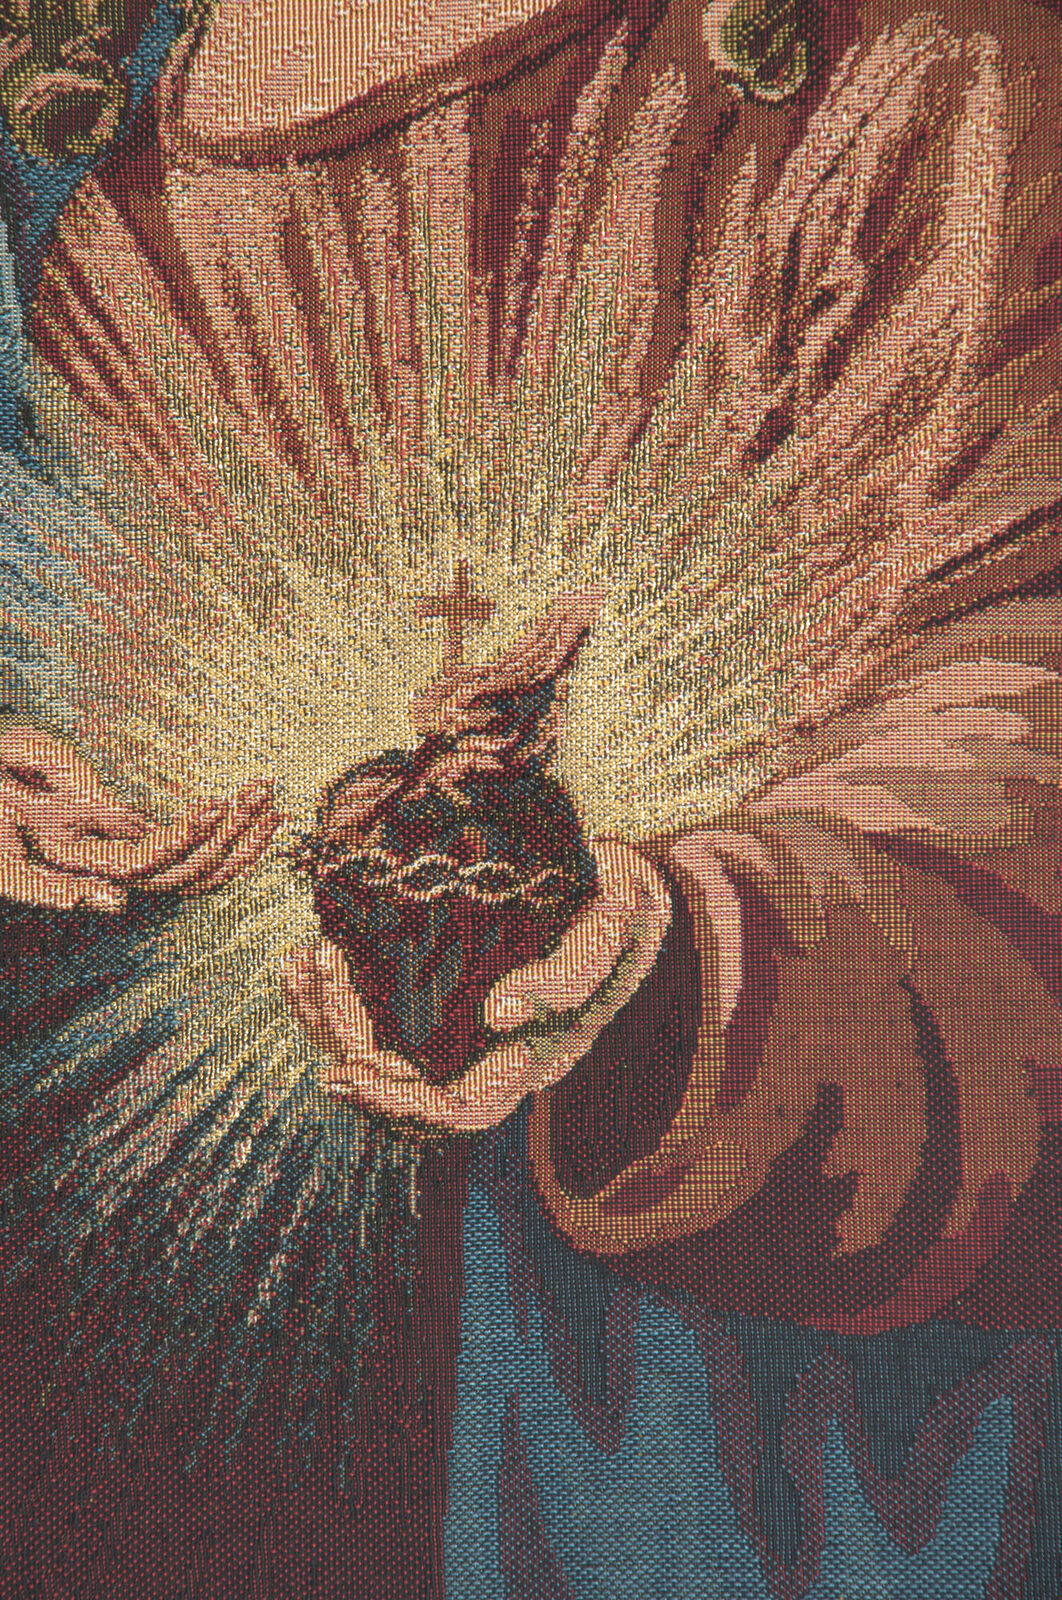 Heart Of Jesus Italian Wall Art Tapestry Wall Hanging For Most Current Blended Fabric Saint Joseph European Tapestries (View 18 of 20)